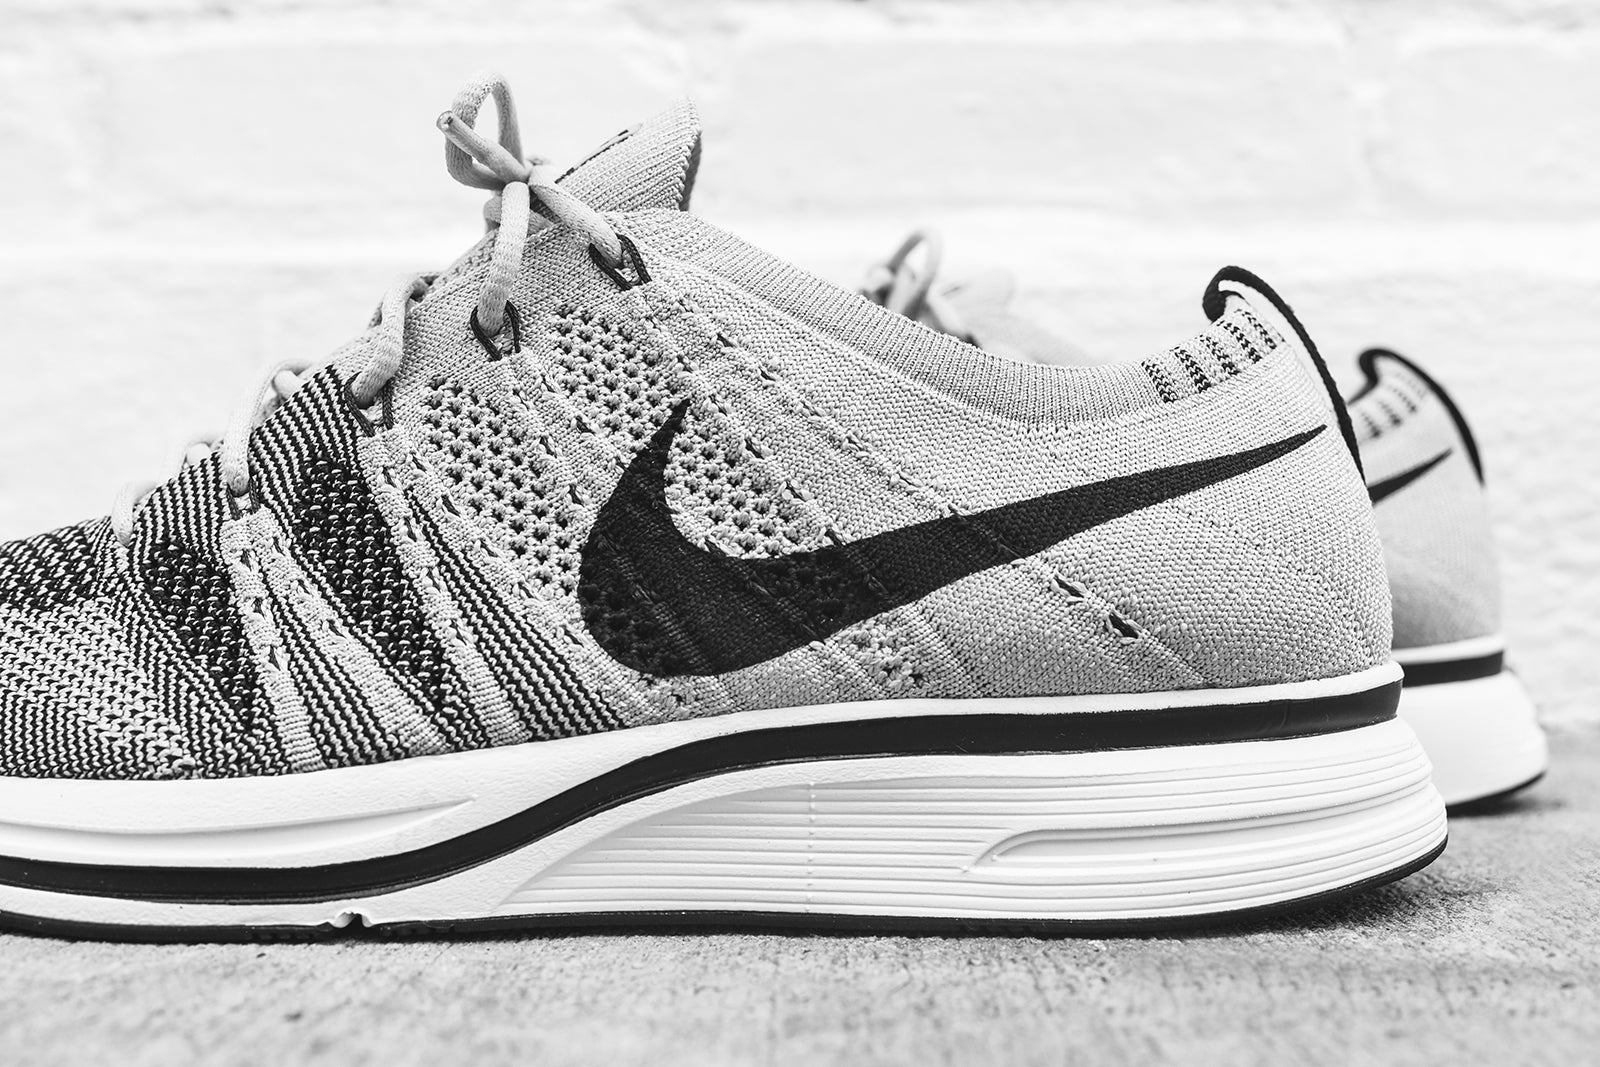 c93b4f706f3b 21738 e58e3 where can i buy nikelab flyknit trainer pale grey black white  0cdce 0527d canada nike flyknit trainer ...